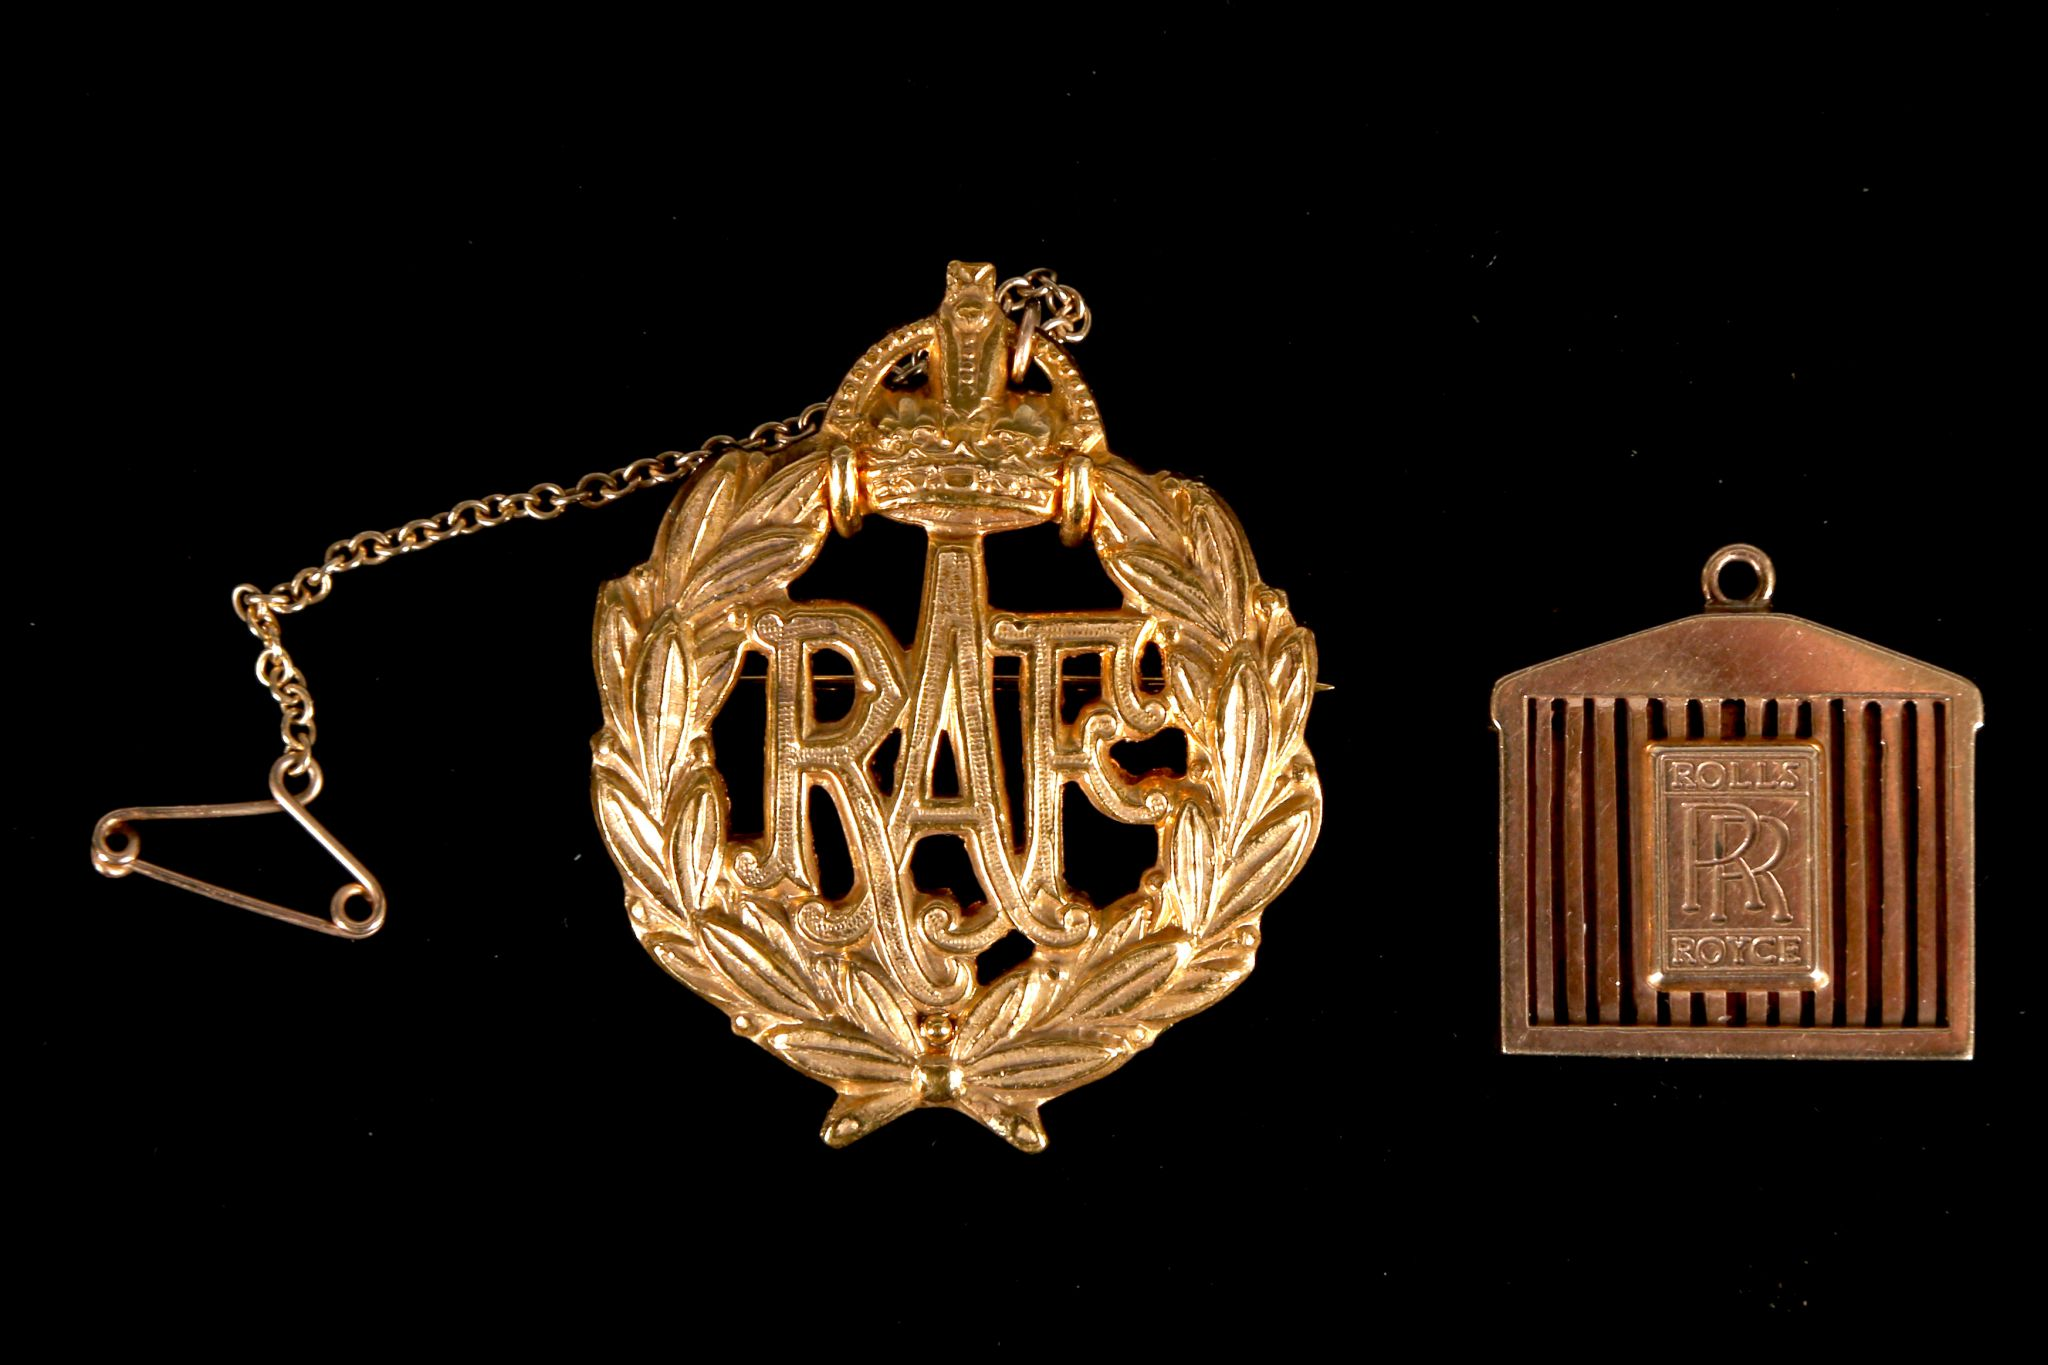 A 9ct gold rolls royce novelty pendant together with royal air lot 319 a 9ct gold rolls royce novelty pendant together with royal air force aloadofball Choice Image